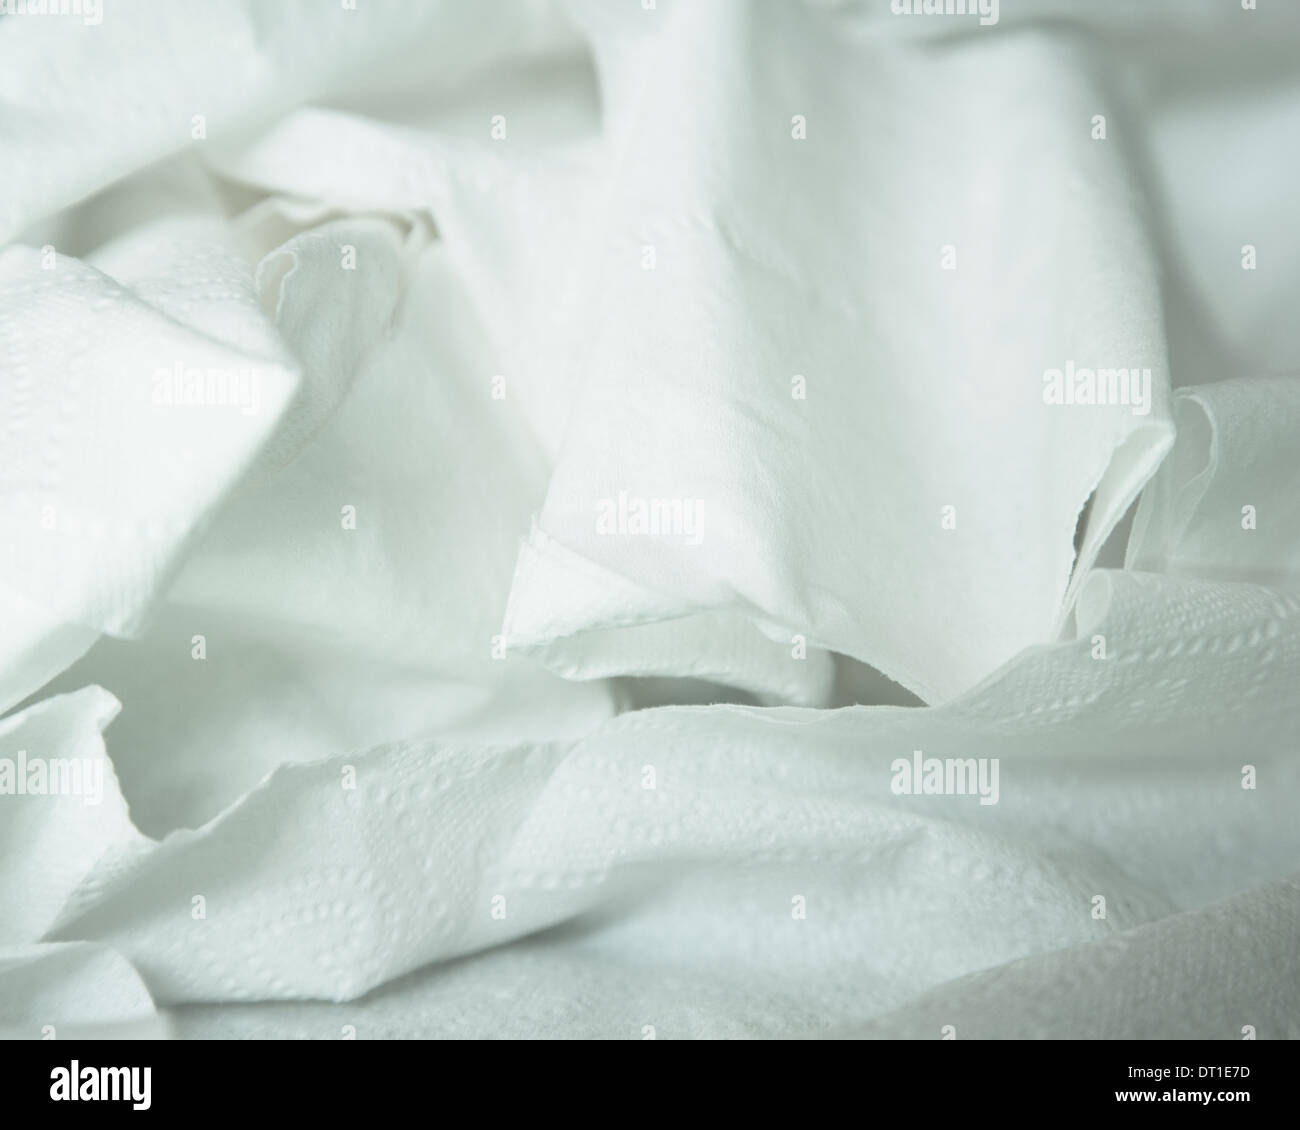 roll of toilet paper unwound and crumpled - Stock Image